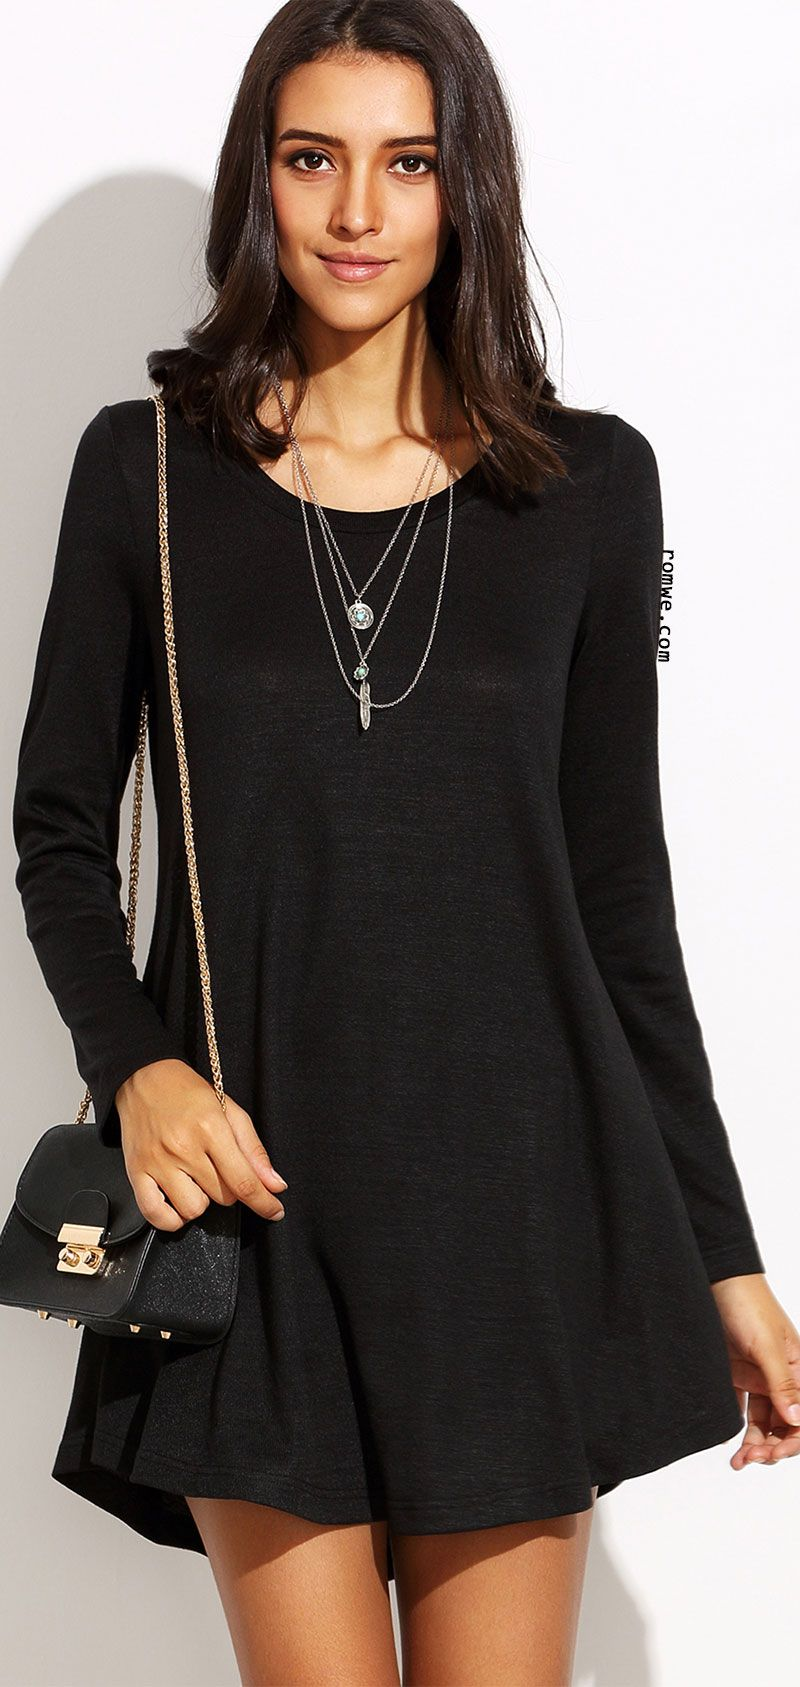 2a1b10bf3eebd Black Round Neck Long Sleeve Shift Dress | Romwe Hot Buy | Pinterest ...